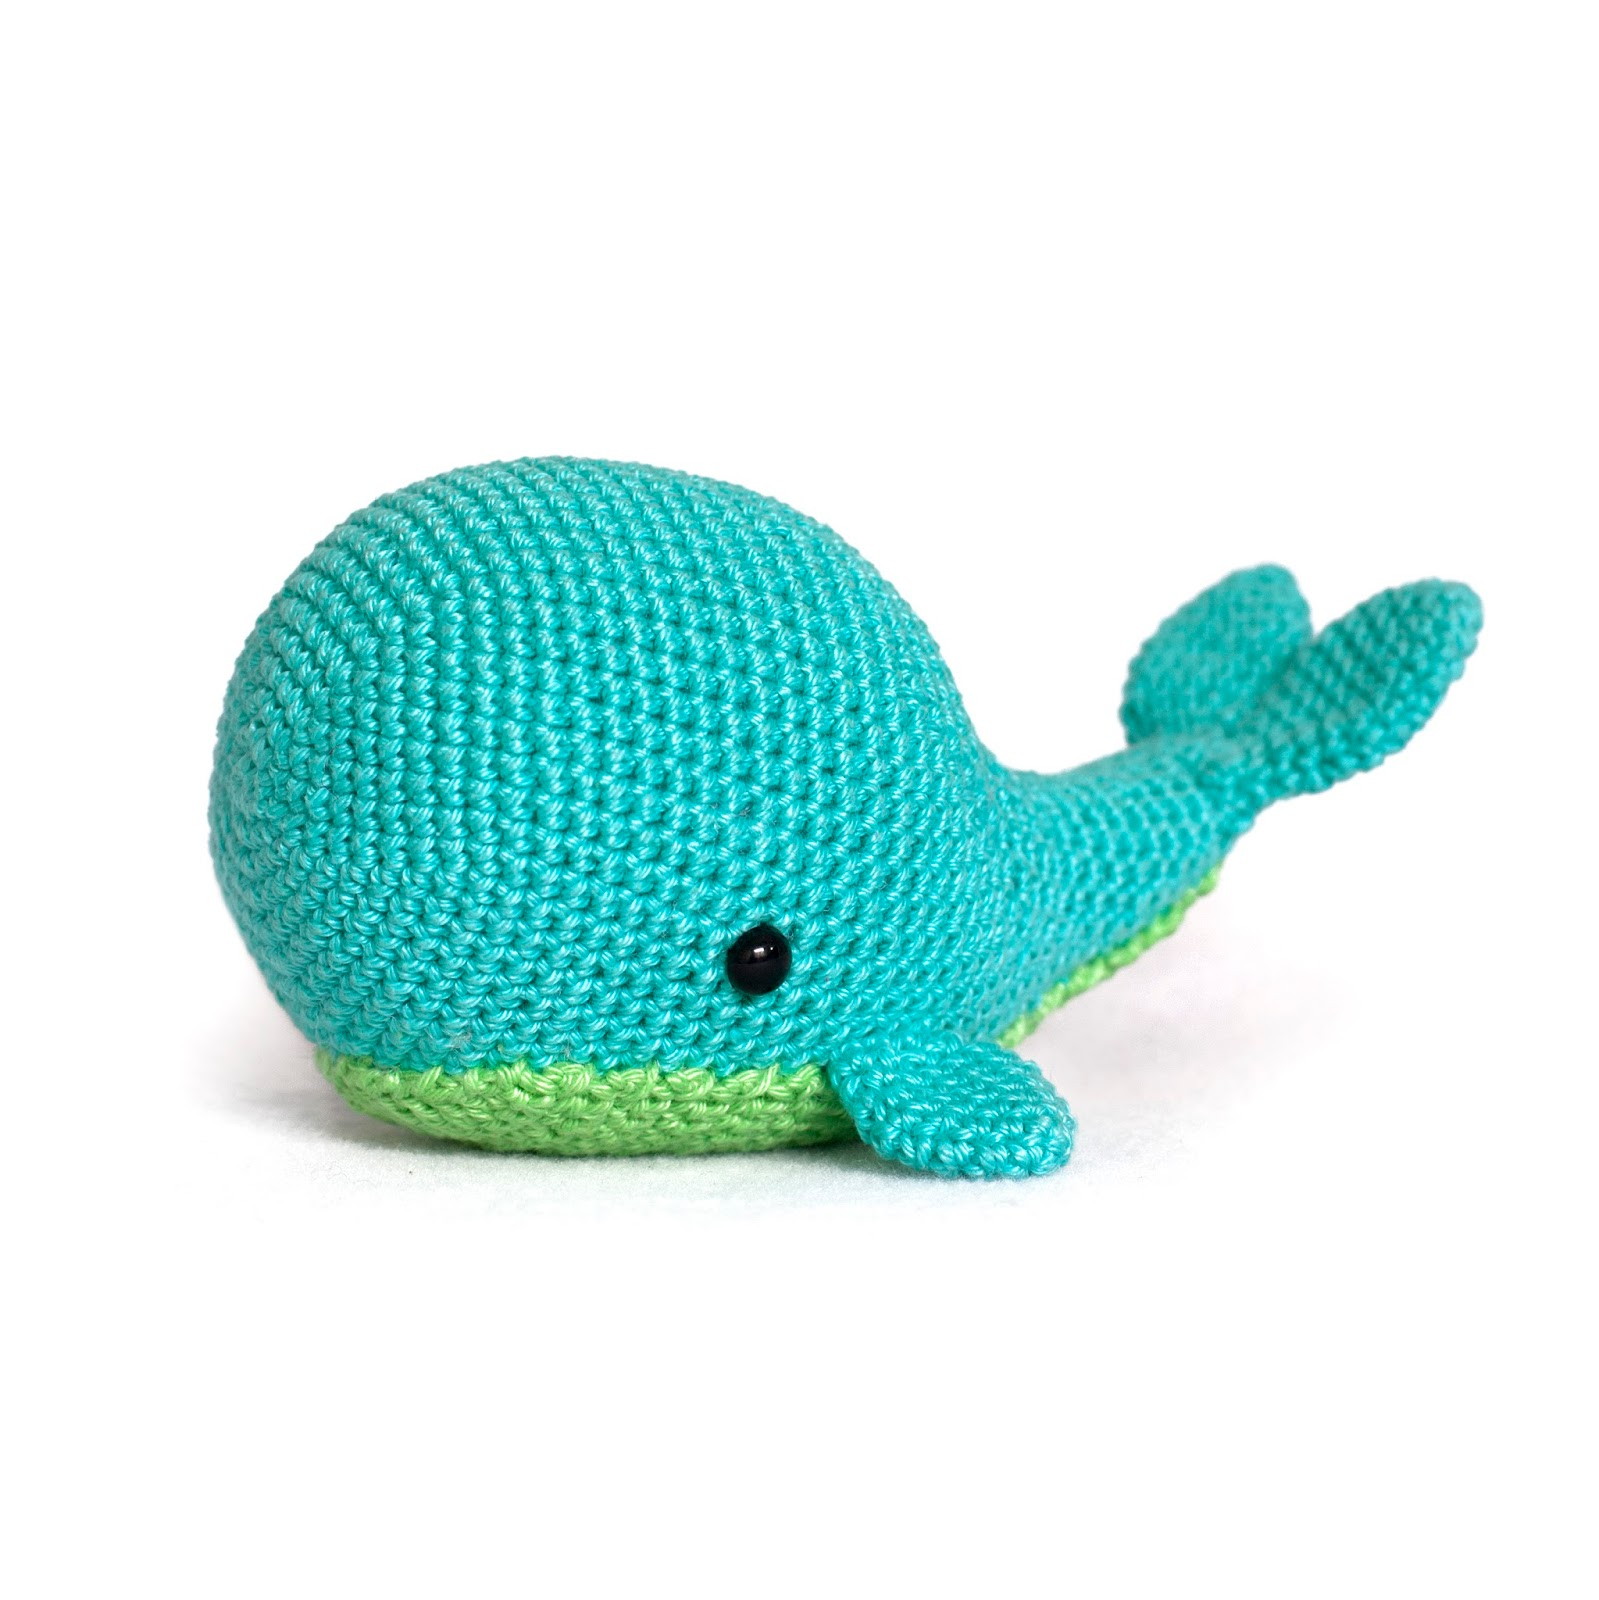 Toy Patterns by DIY Fluffies : Whale amigurumi crochet pattern